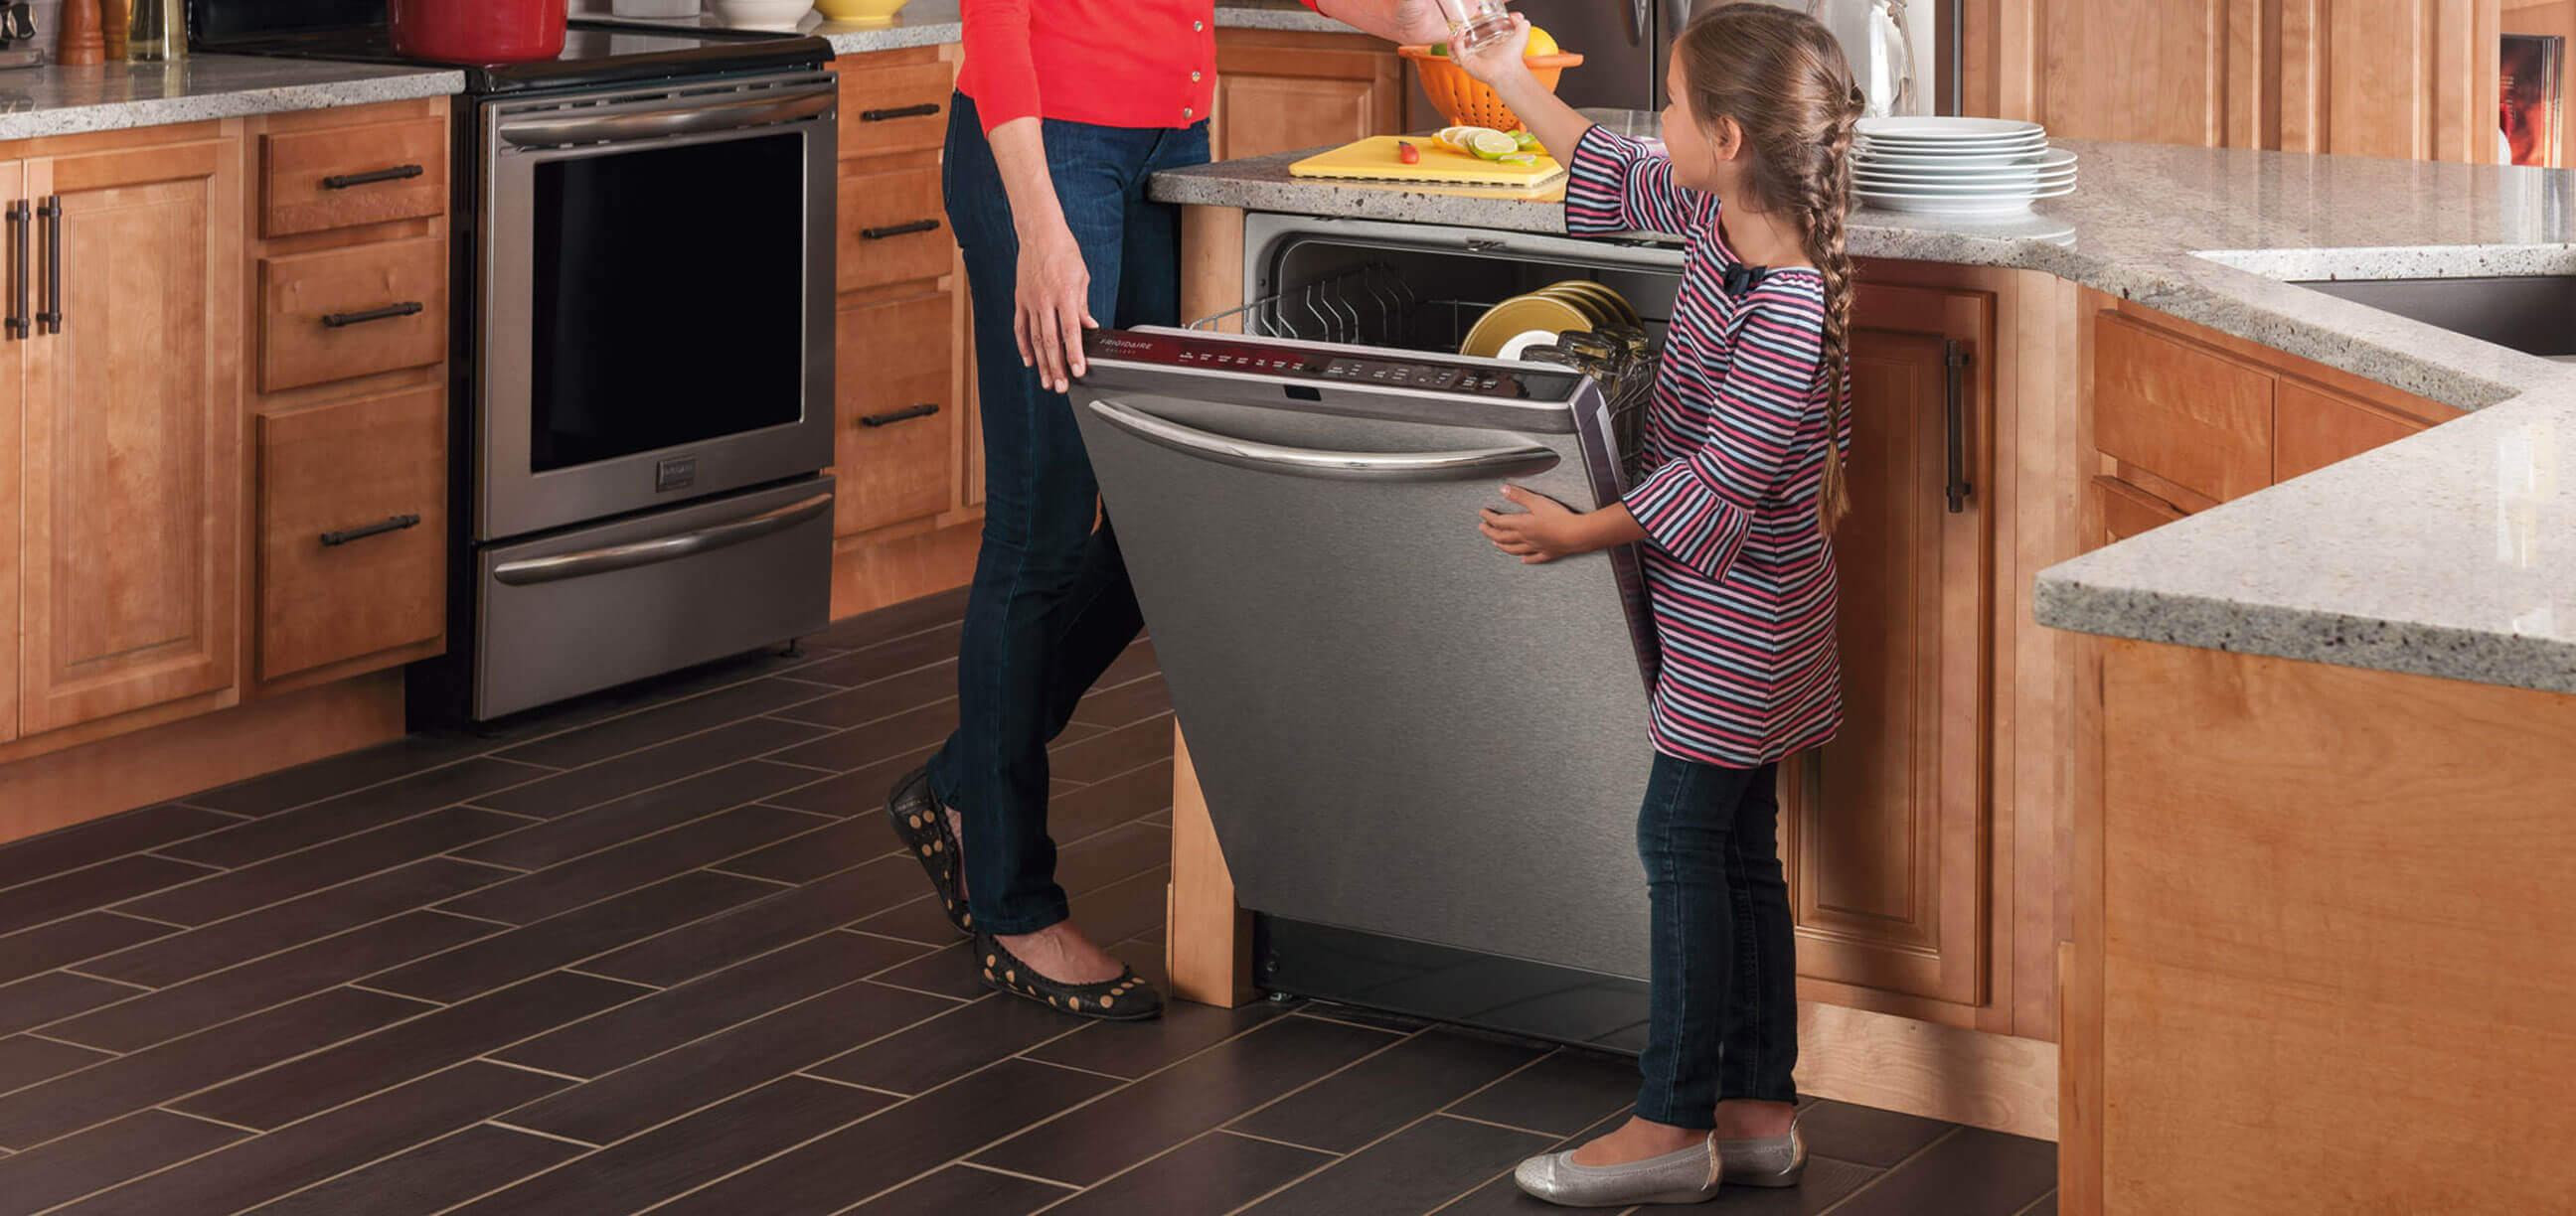 Appliances Appliance Parts In Hickory Lenoir And Morganton Nc Diagram List For Model Wed7600xw0 Whirlpoolparts Dryer As We Have The Ability To Over One Million Items On Our Website Selection Changes All Of Time It Is Not Feasible A Company